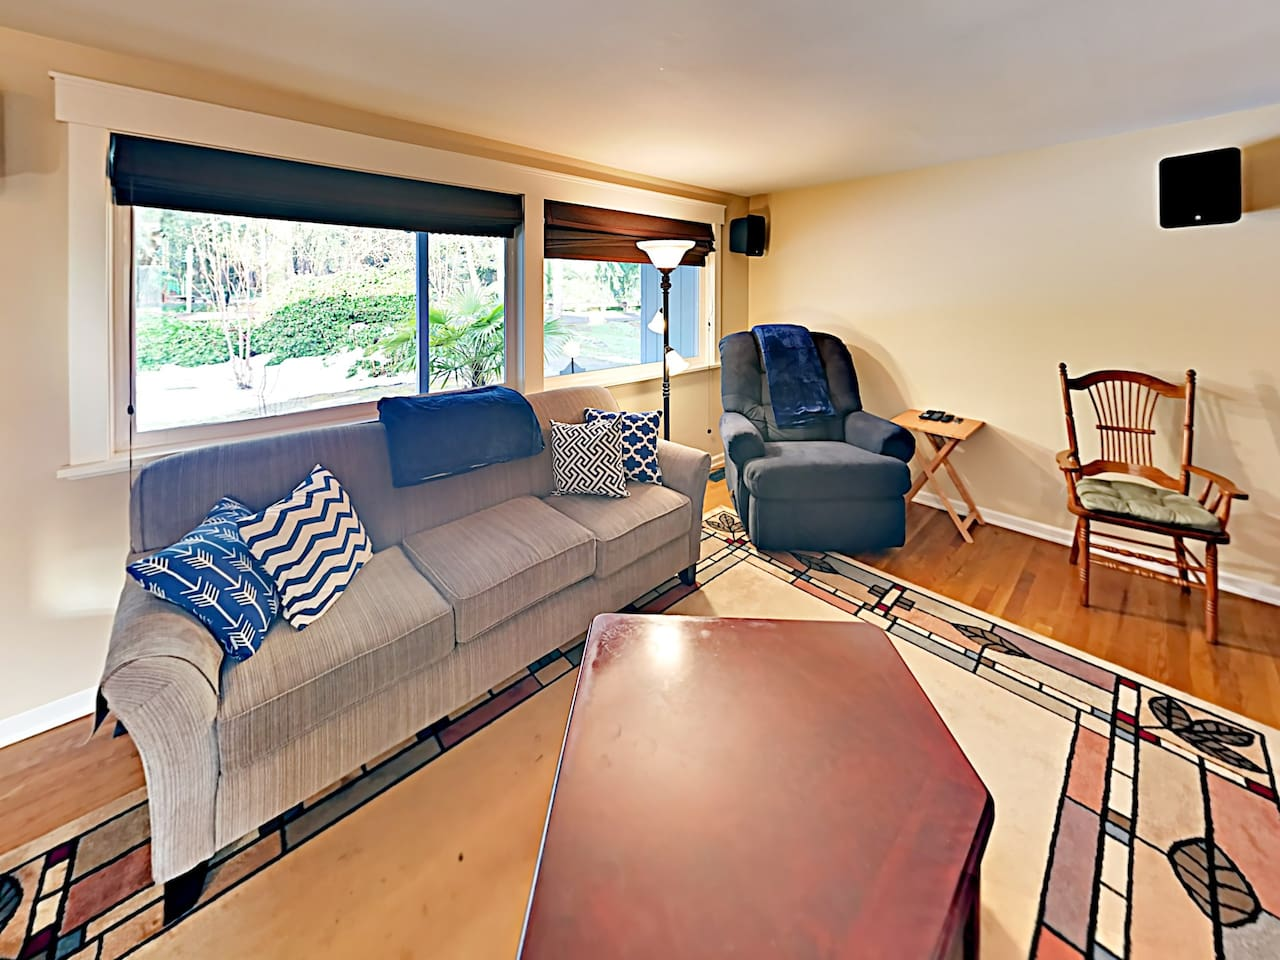 Welcome to Shoreline! This home is professionally managed by TurnKey Vacation Rentals.